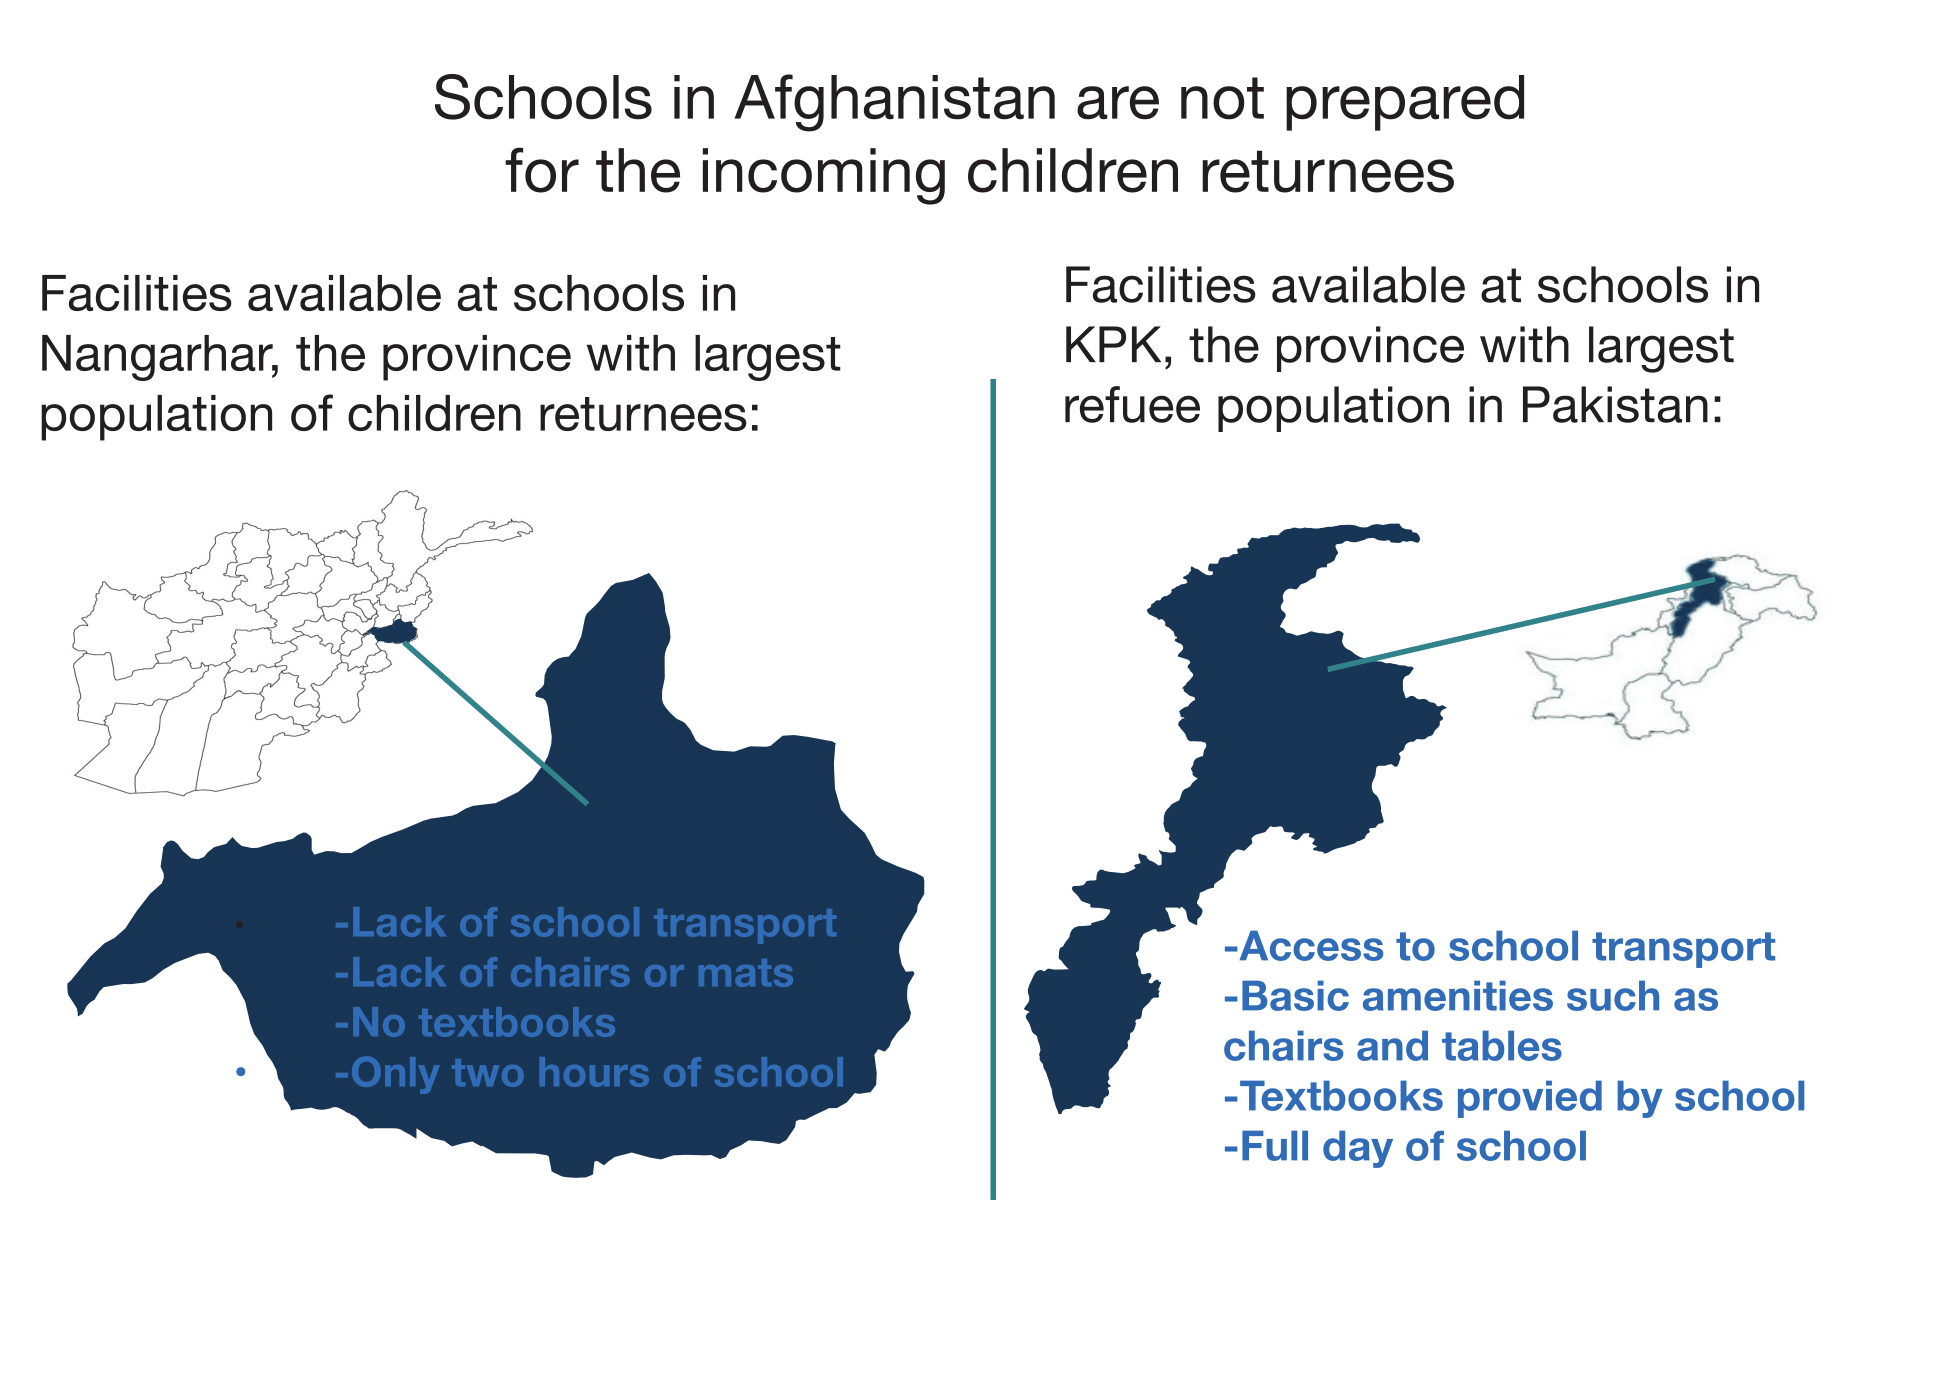 Data Source: Ahmad Ali, Nangarhar and Agency For Technical Cooperation and Development